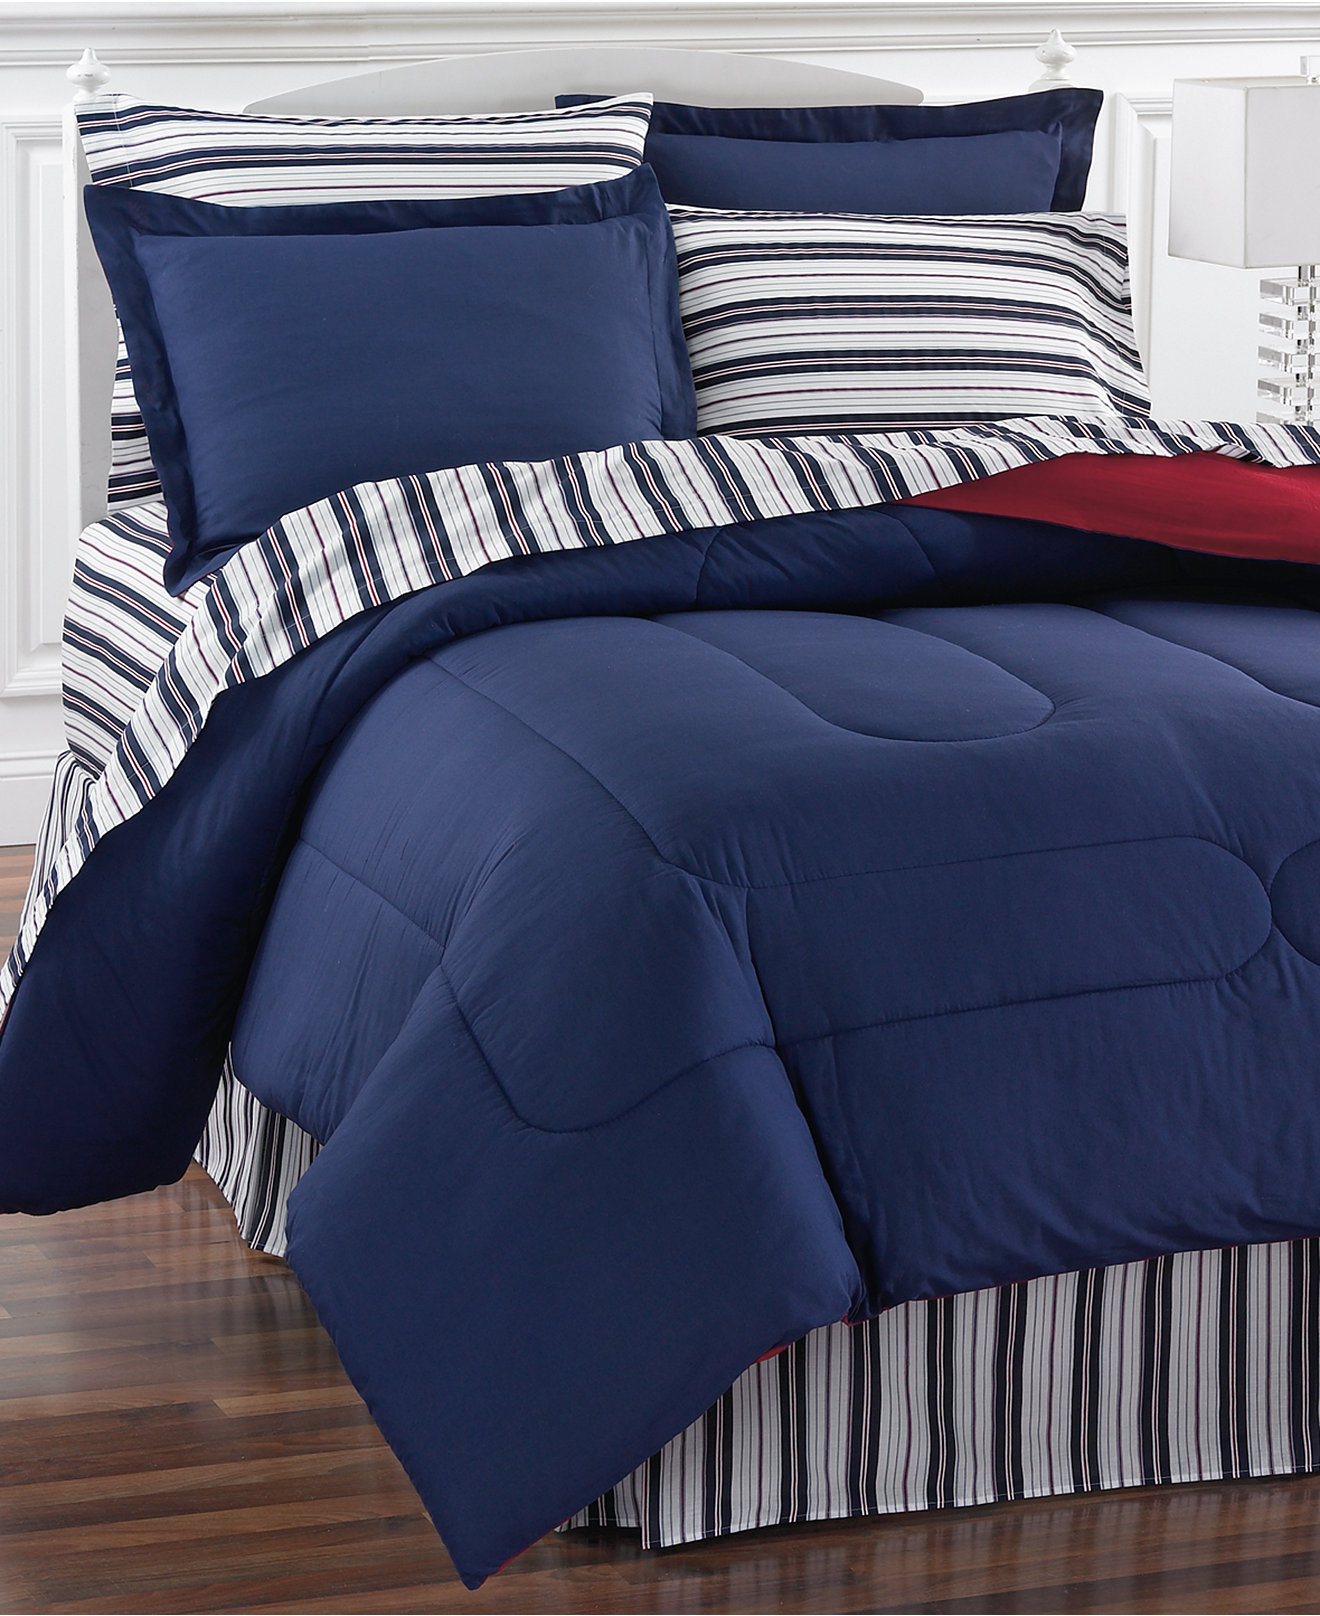 Blue bedspreads and comforters - Navy Yard Reversible Bedding Ensembles Only At Macy S Bed In A Bag Bed Bath Macy S